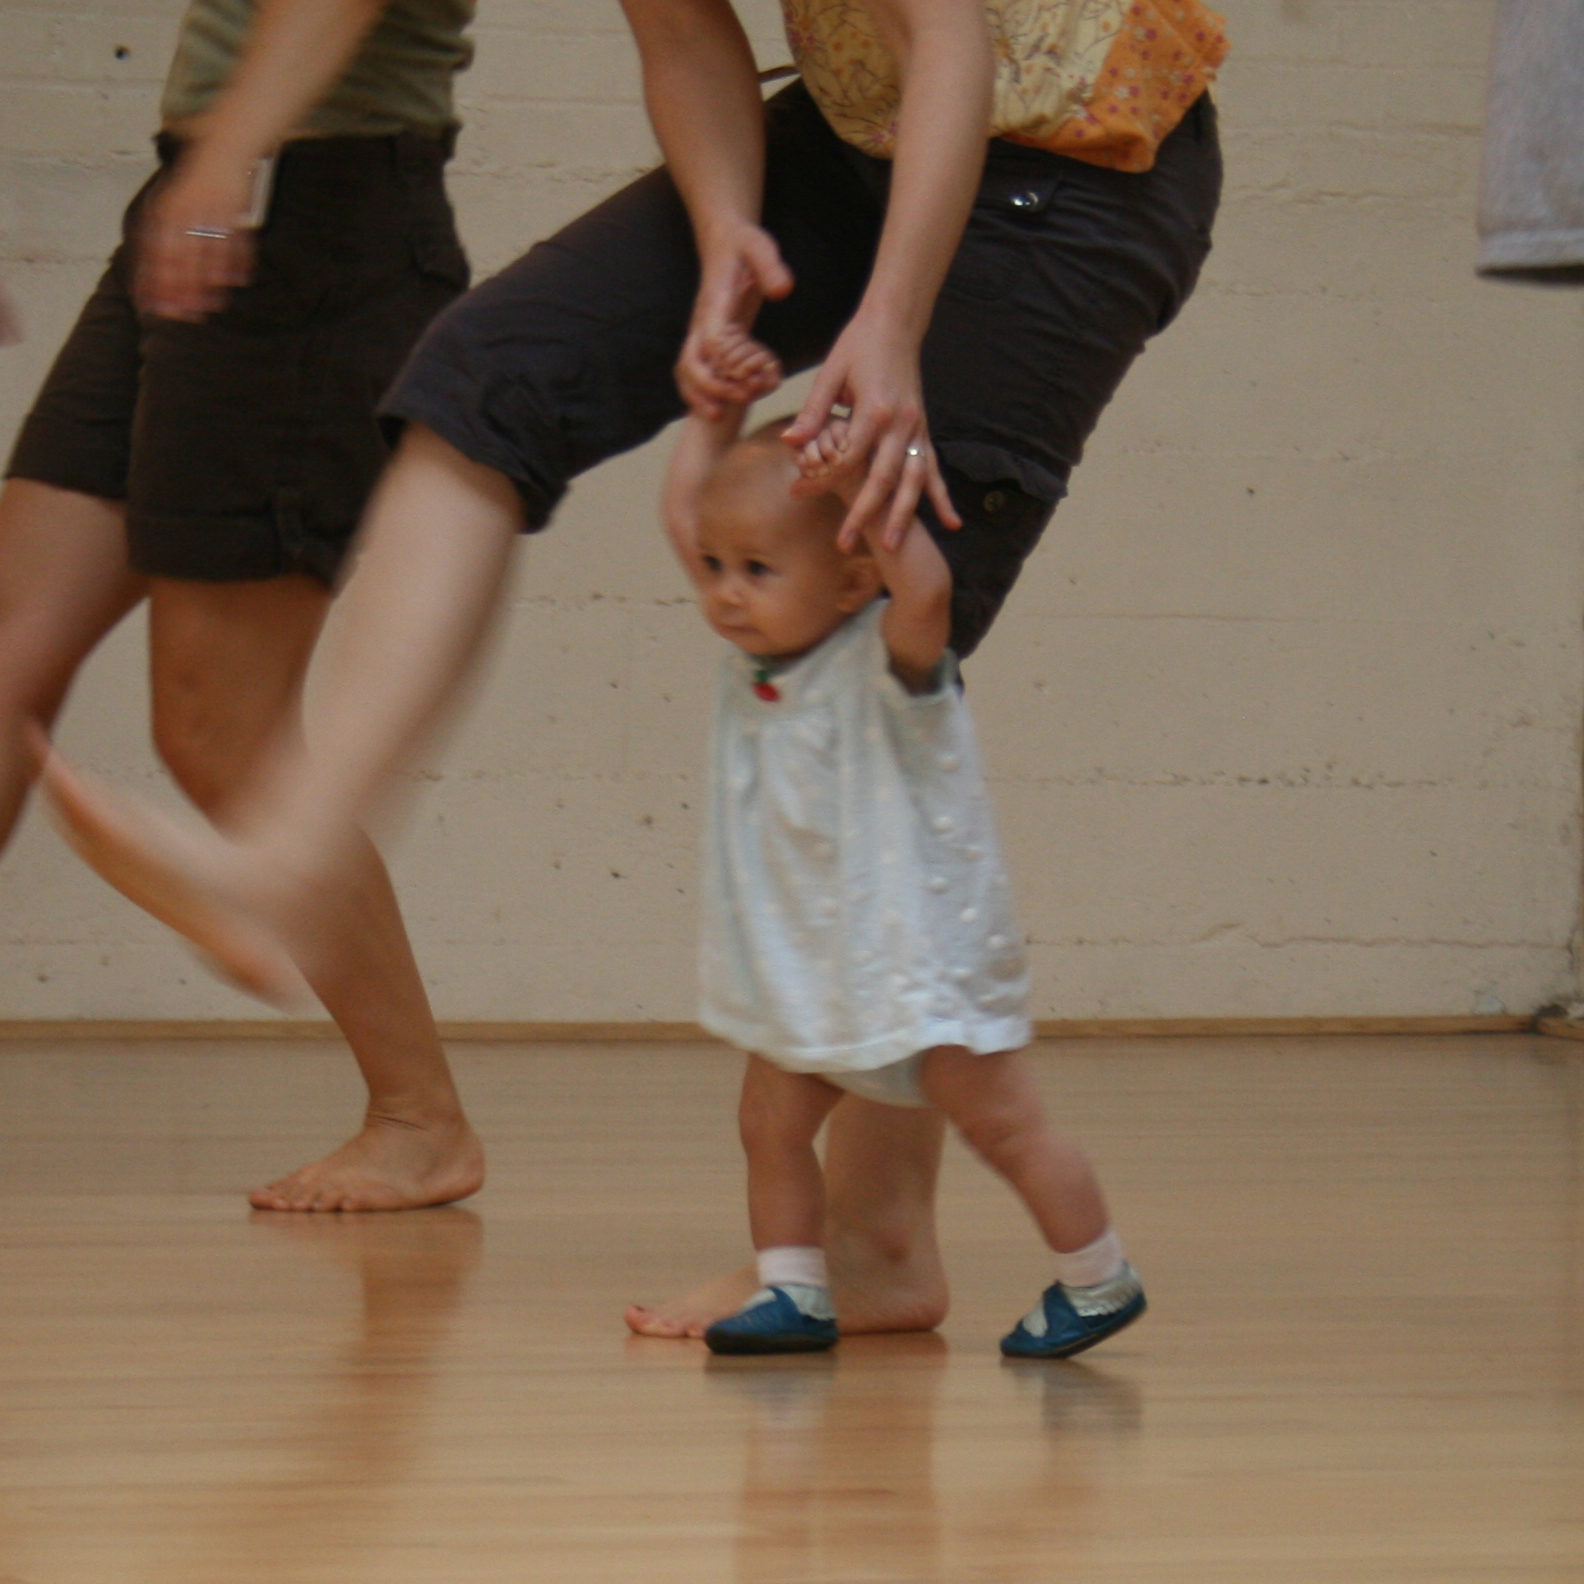 Infant-among-adult-legs-cropped